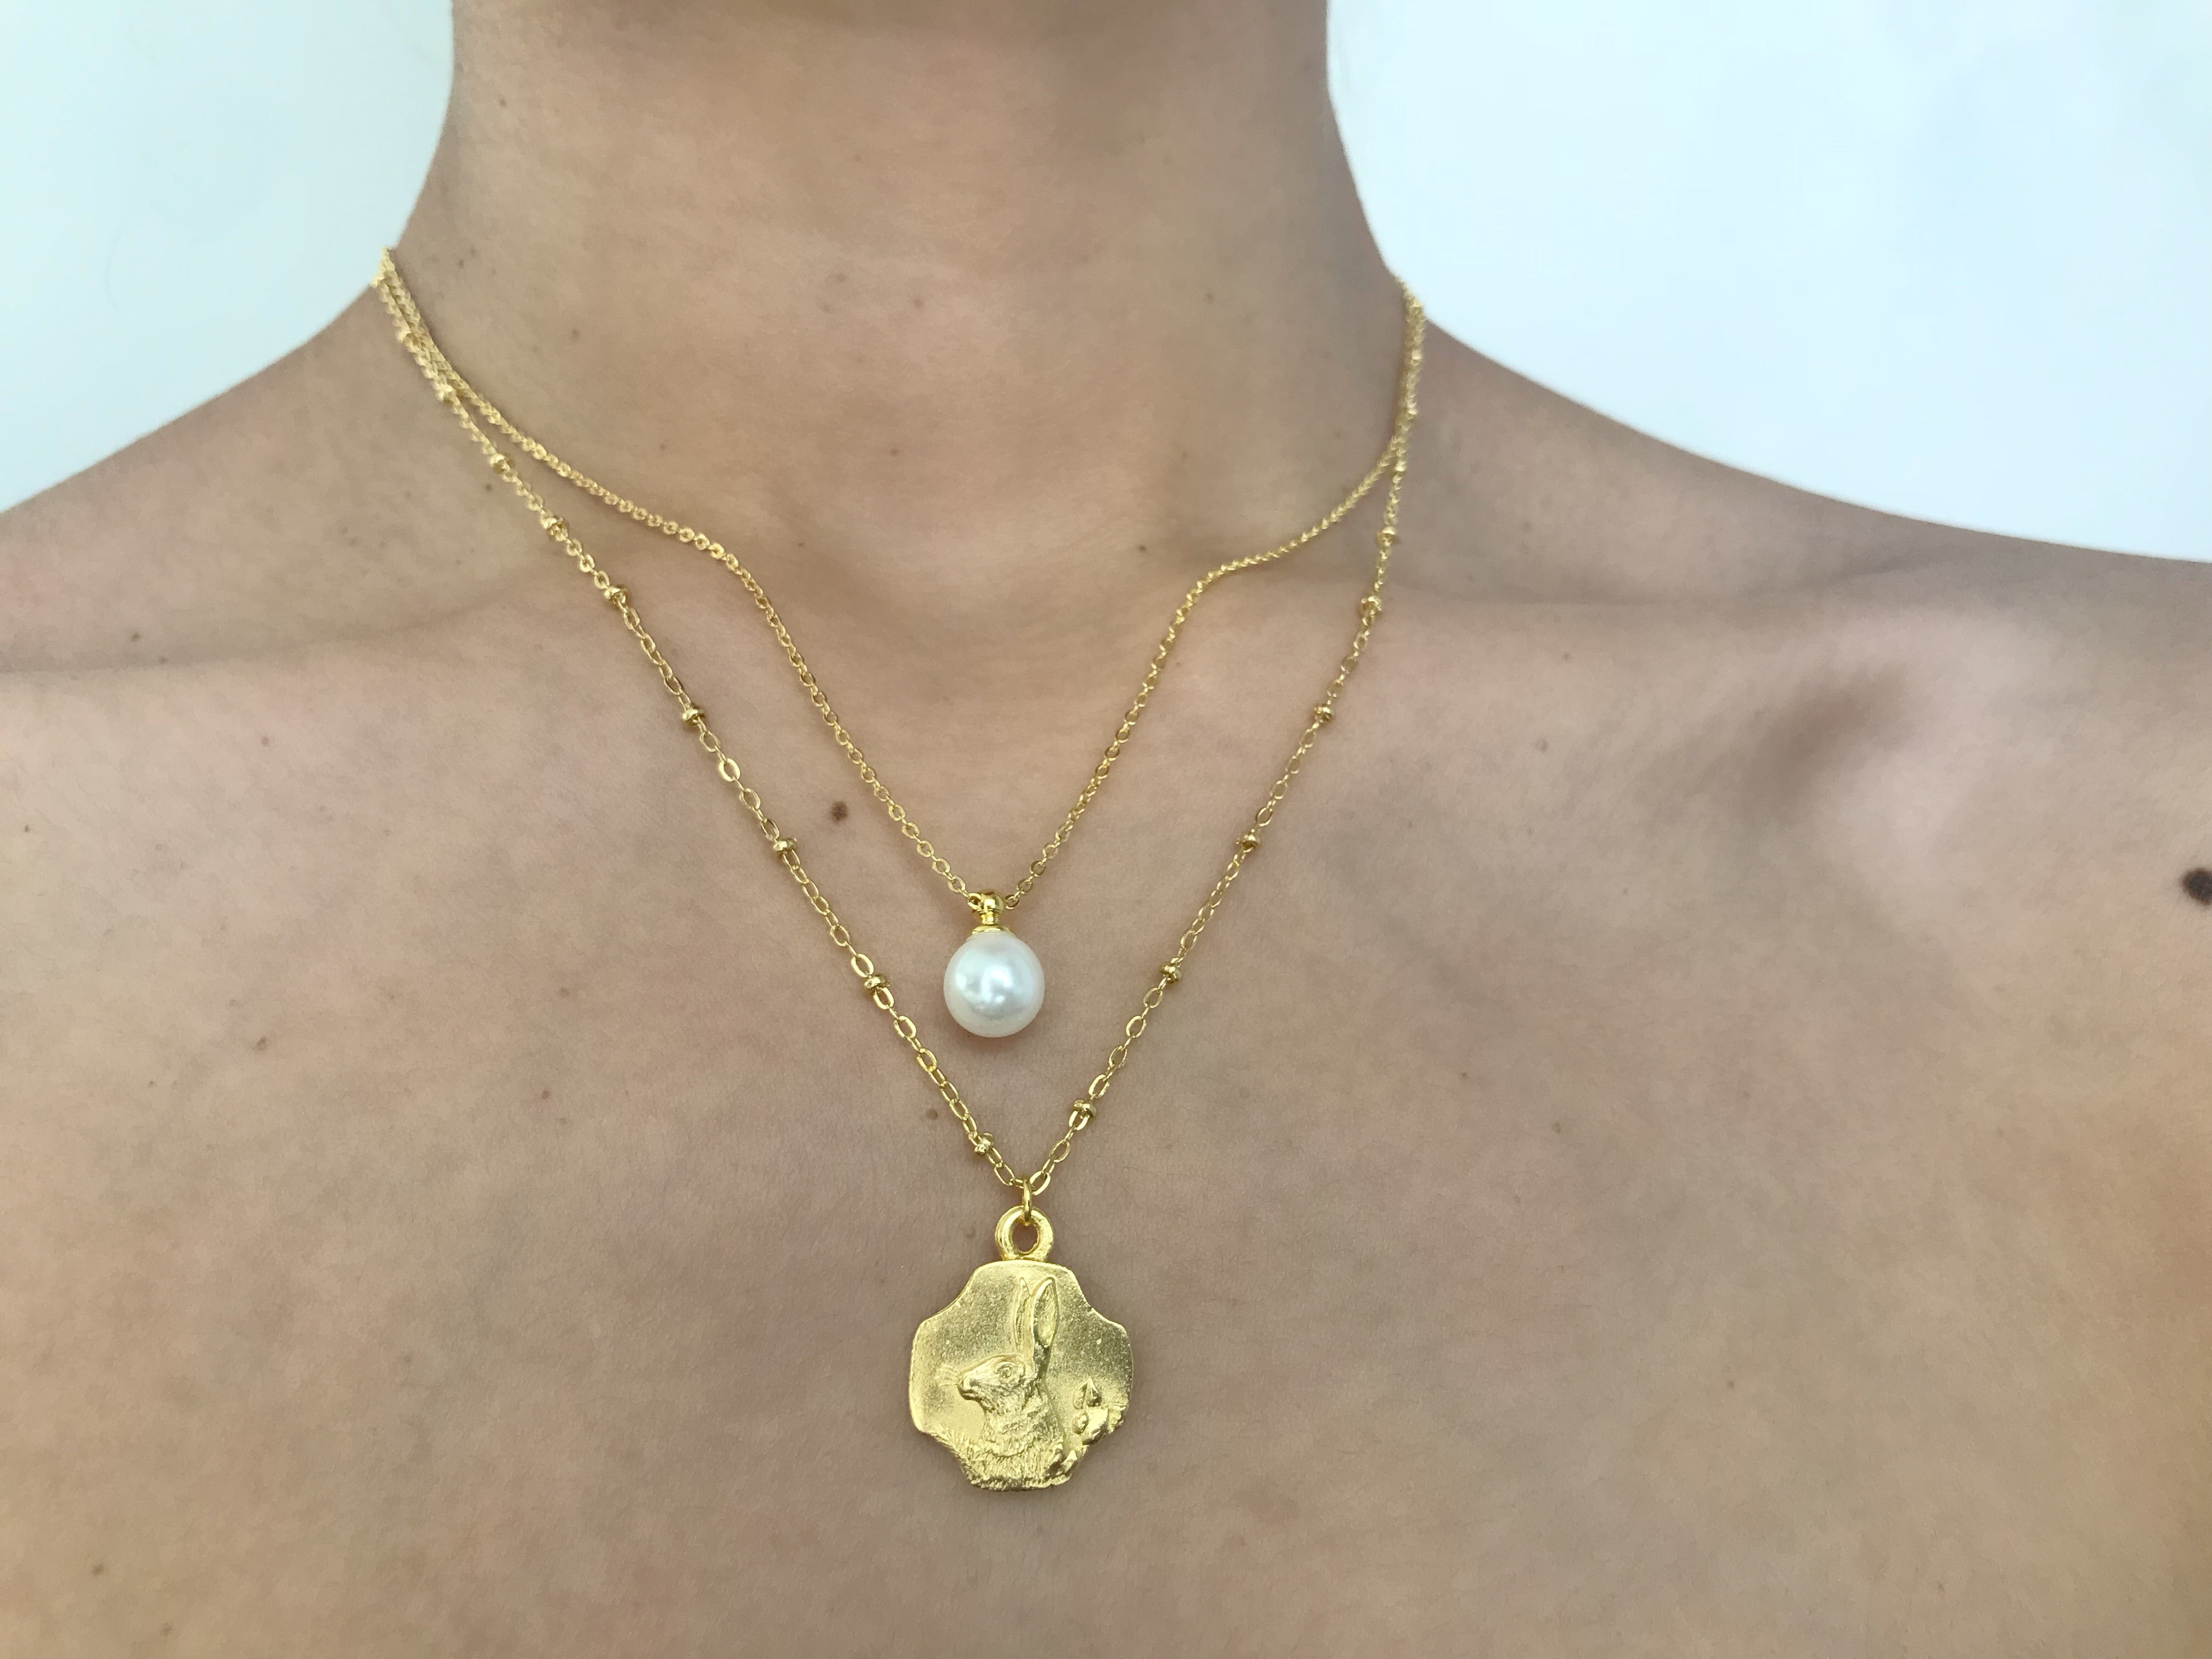 Pearl necklace, large pearl necklace, gold pearl necklace, rabbit necklace, bunny necklace